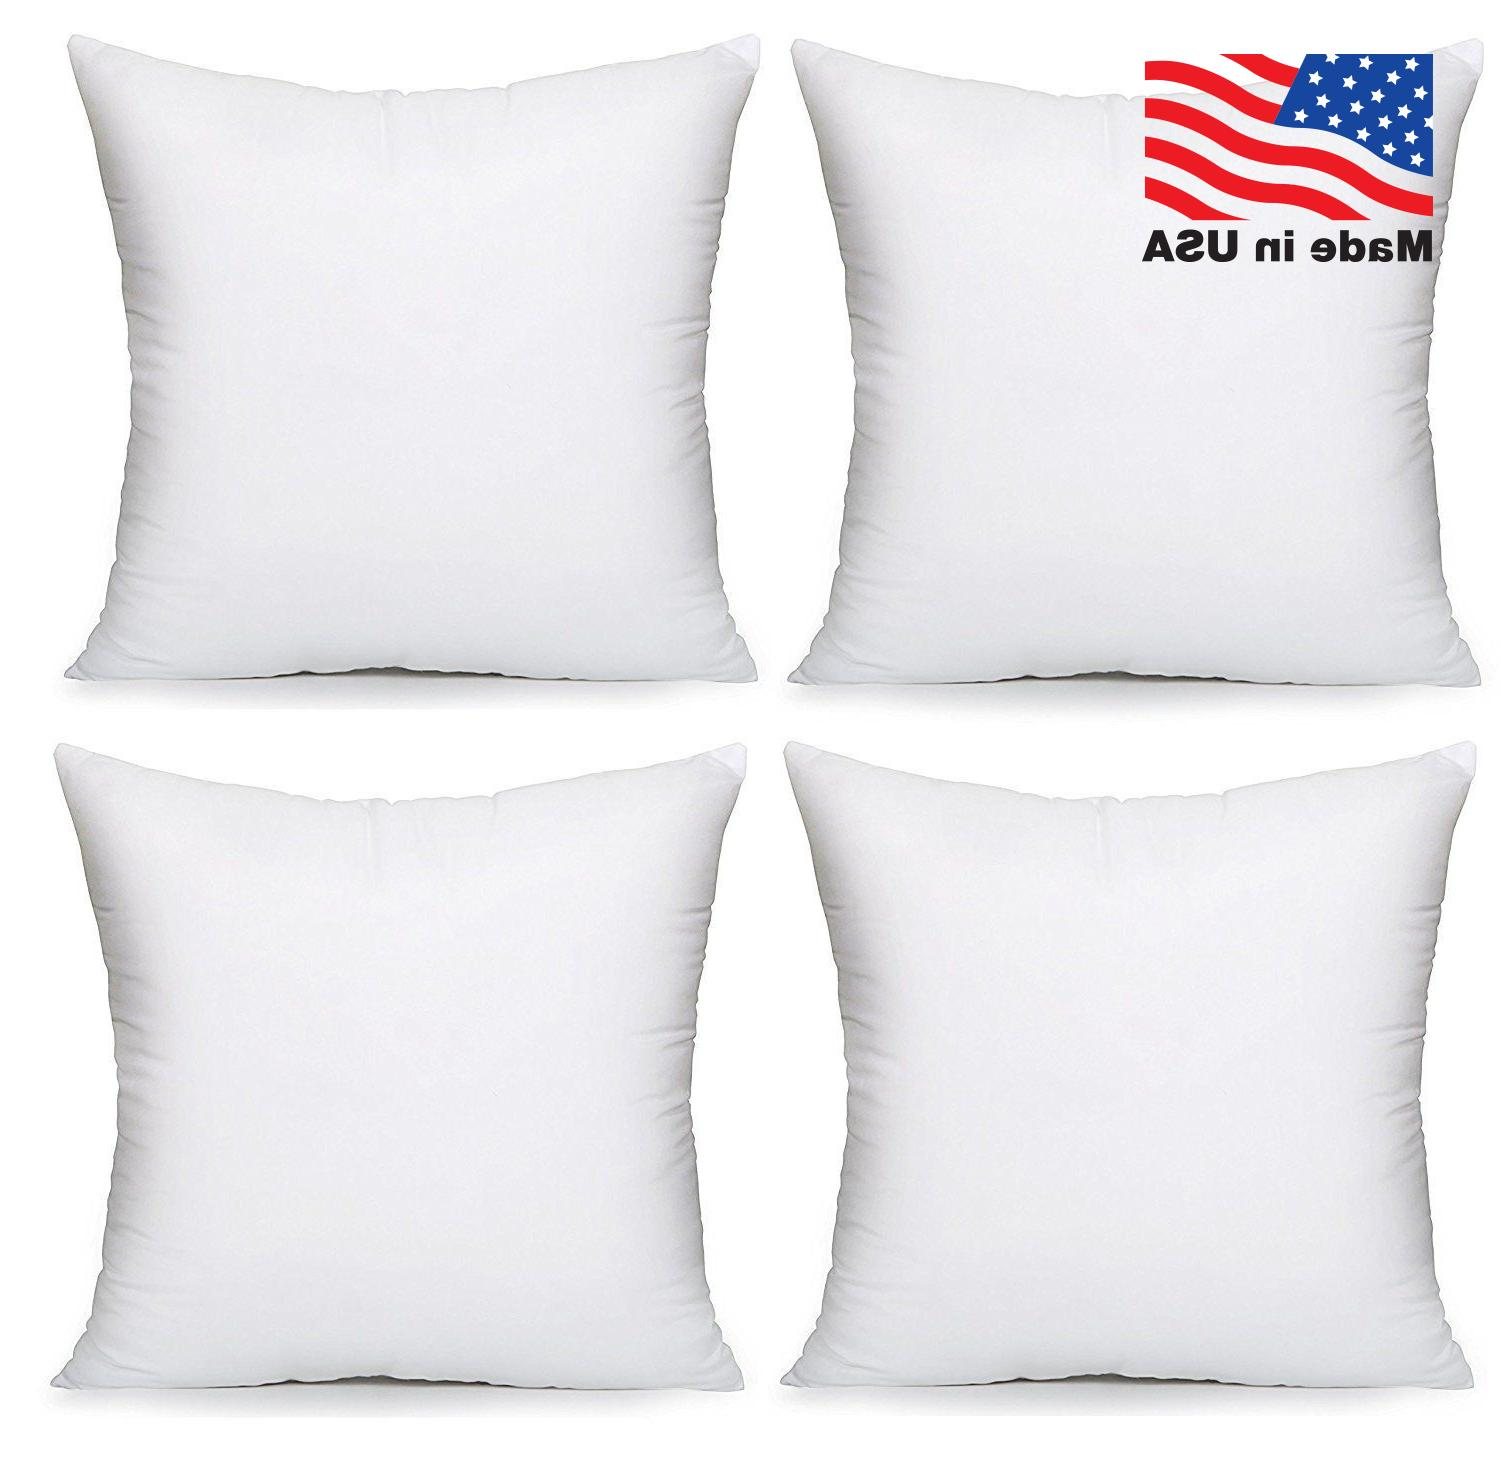 Throw Pillow Insert Square Euro Pillow Stuffing Made in USA